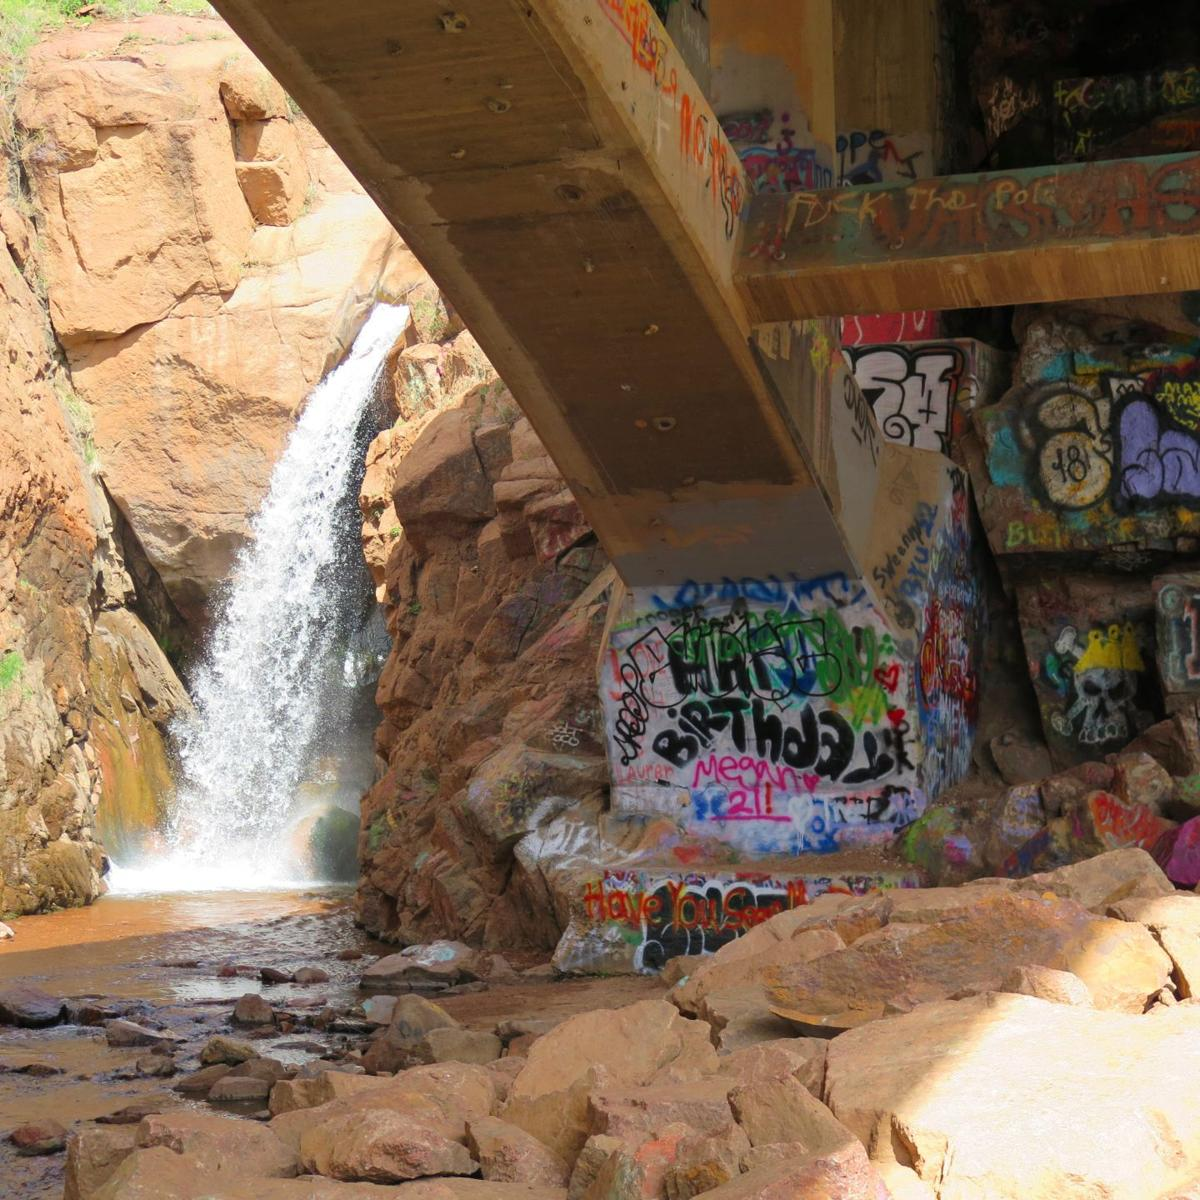 Rainbow Falls reopens, with ongoing cleanup efforts in the works